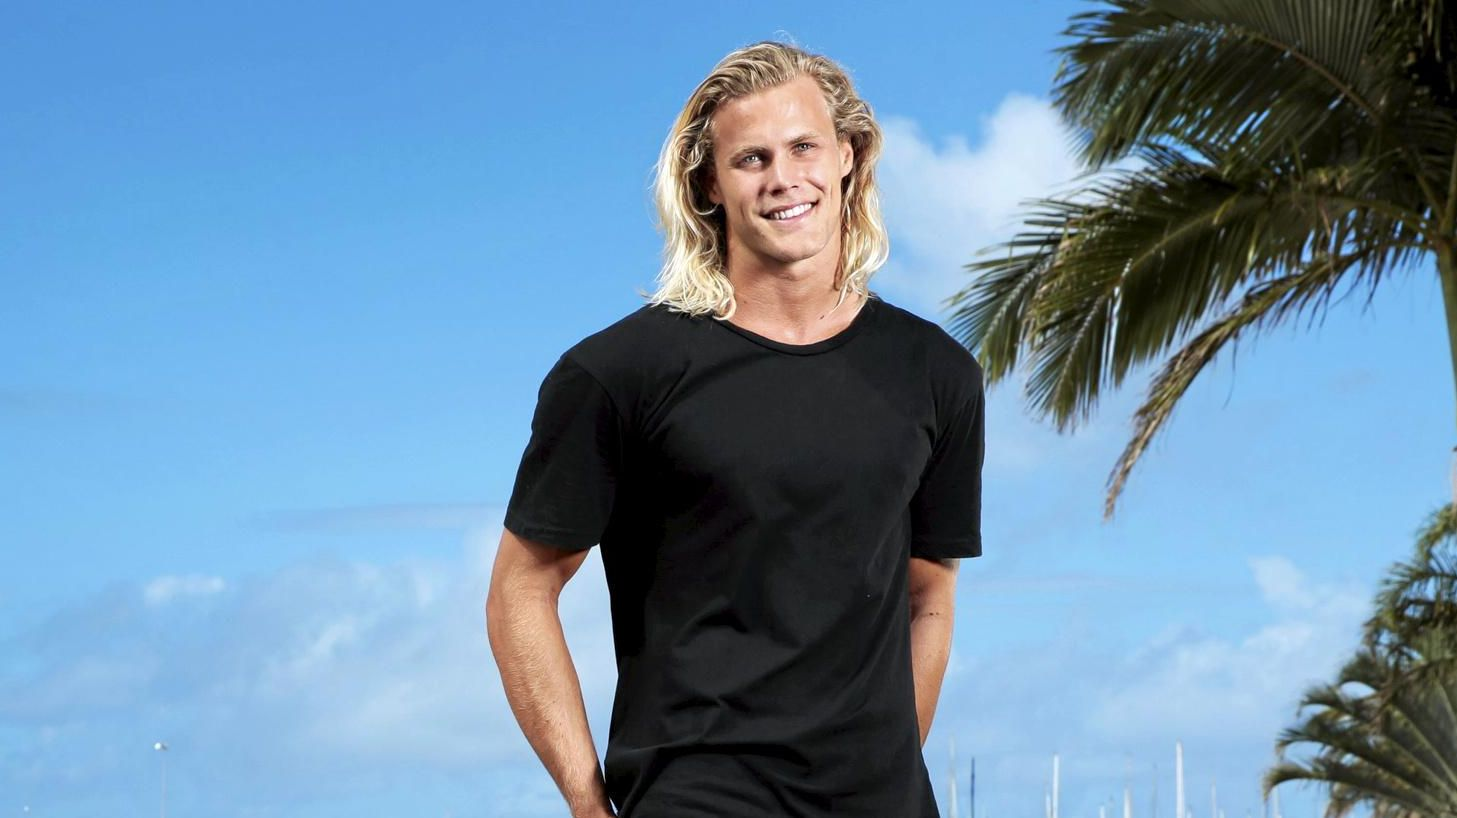 DANCING DREAMS?: Jett Kenny may be heading to the dancefloor on Dancing with the Stars.